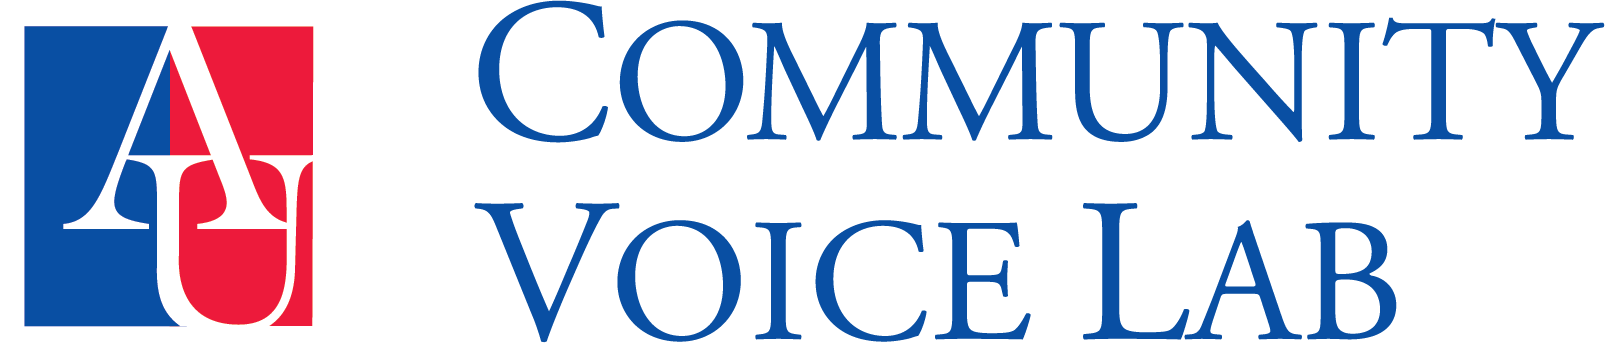 American University Community Voice Lab Logo